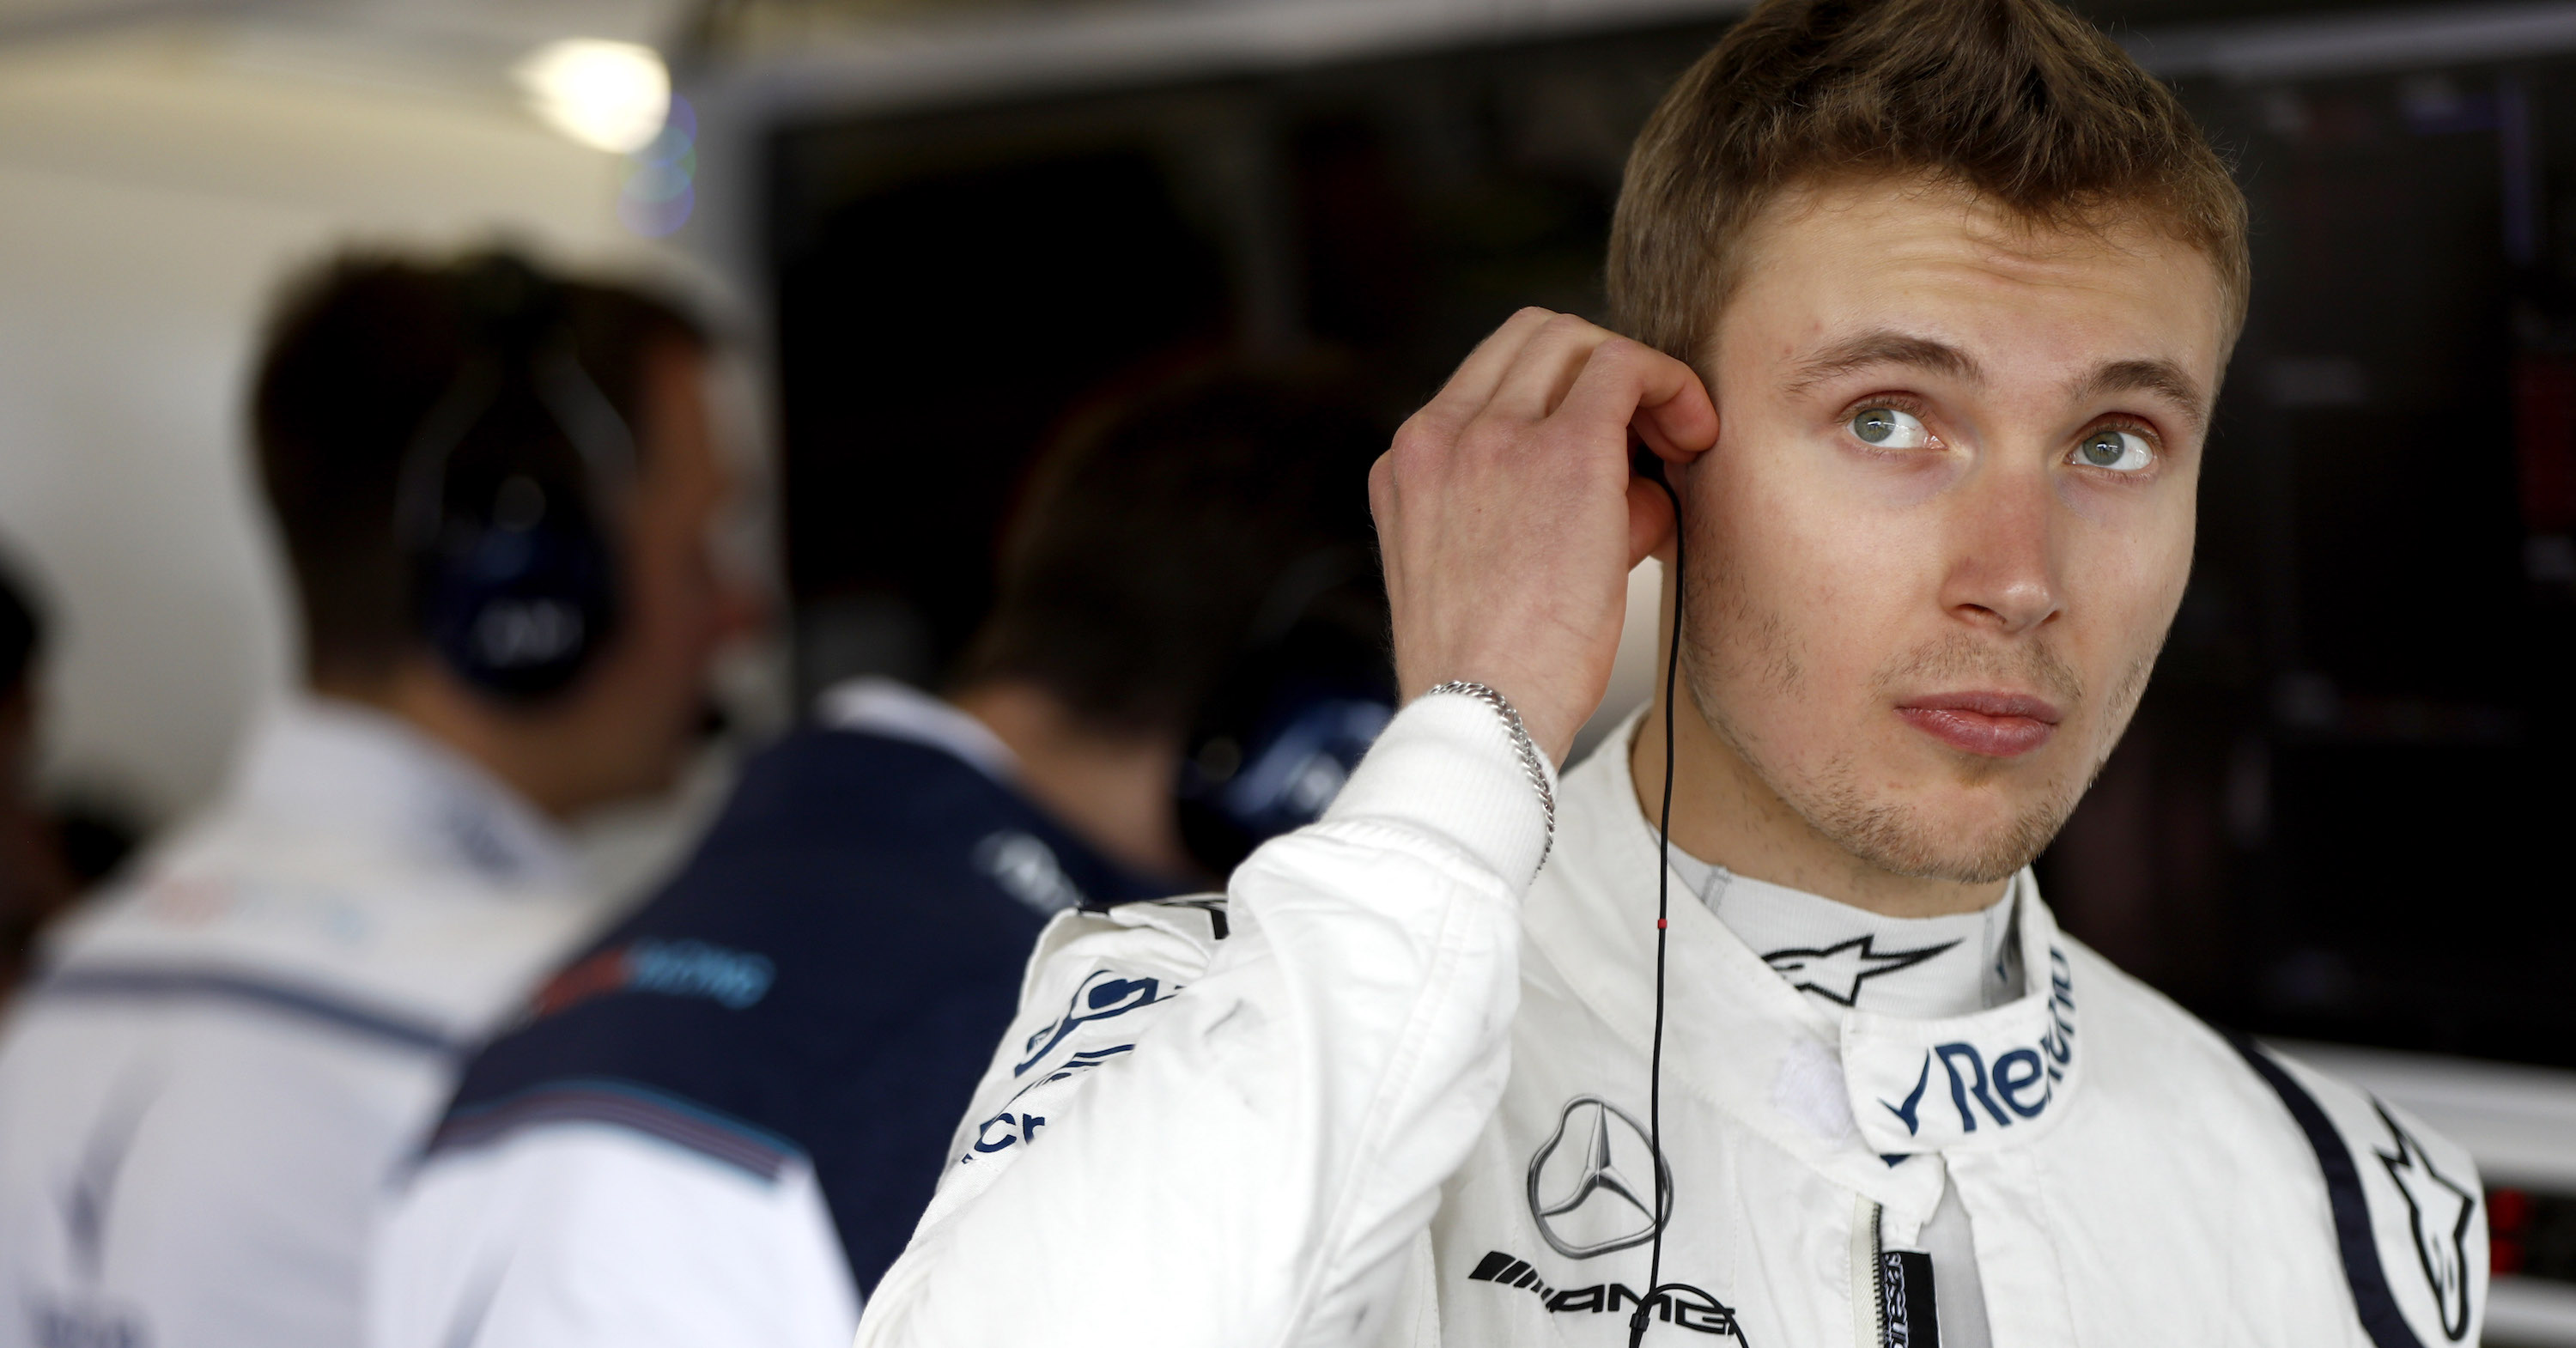 Sergey Sirotkin of Williams Racing.